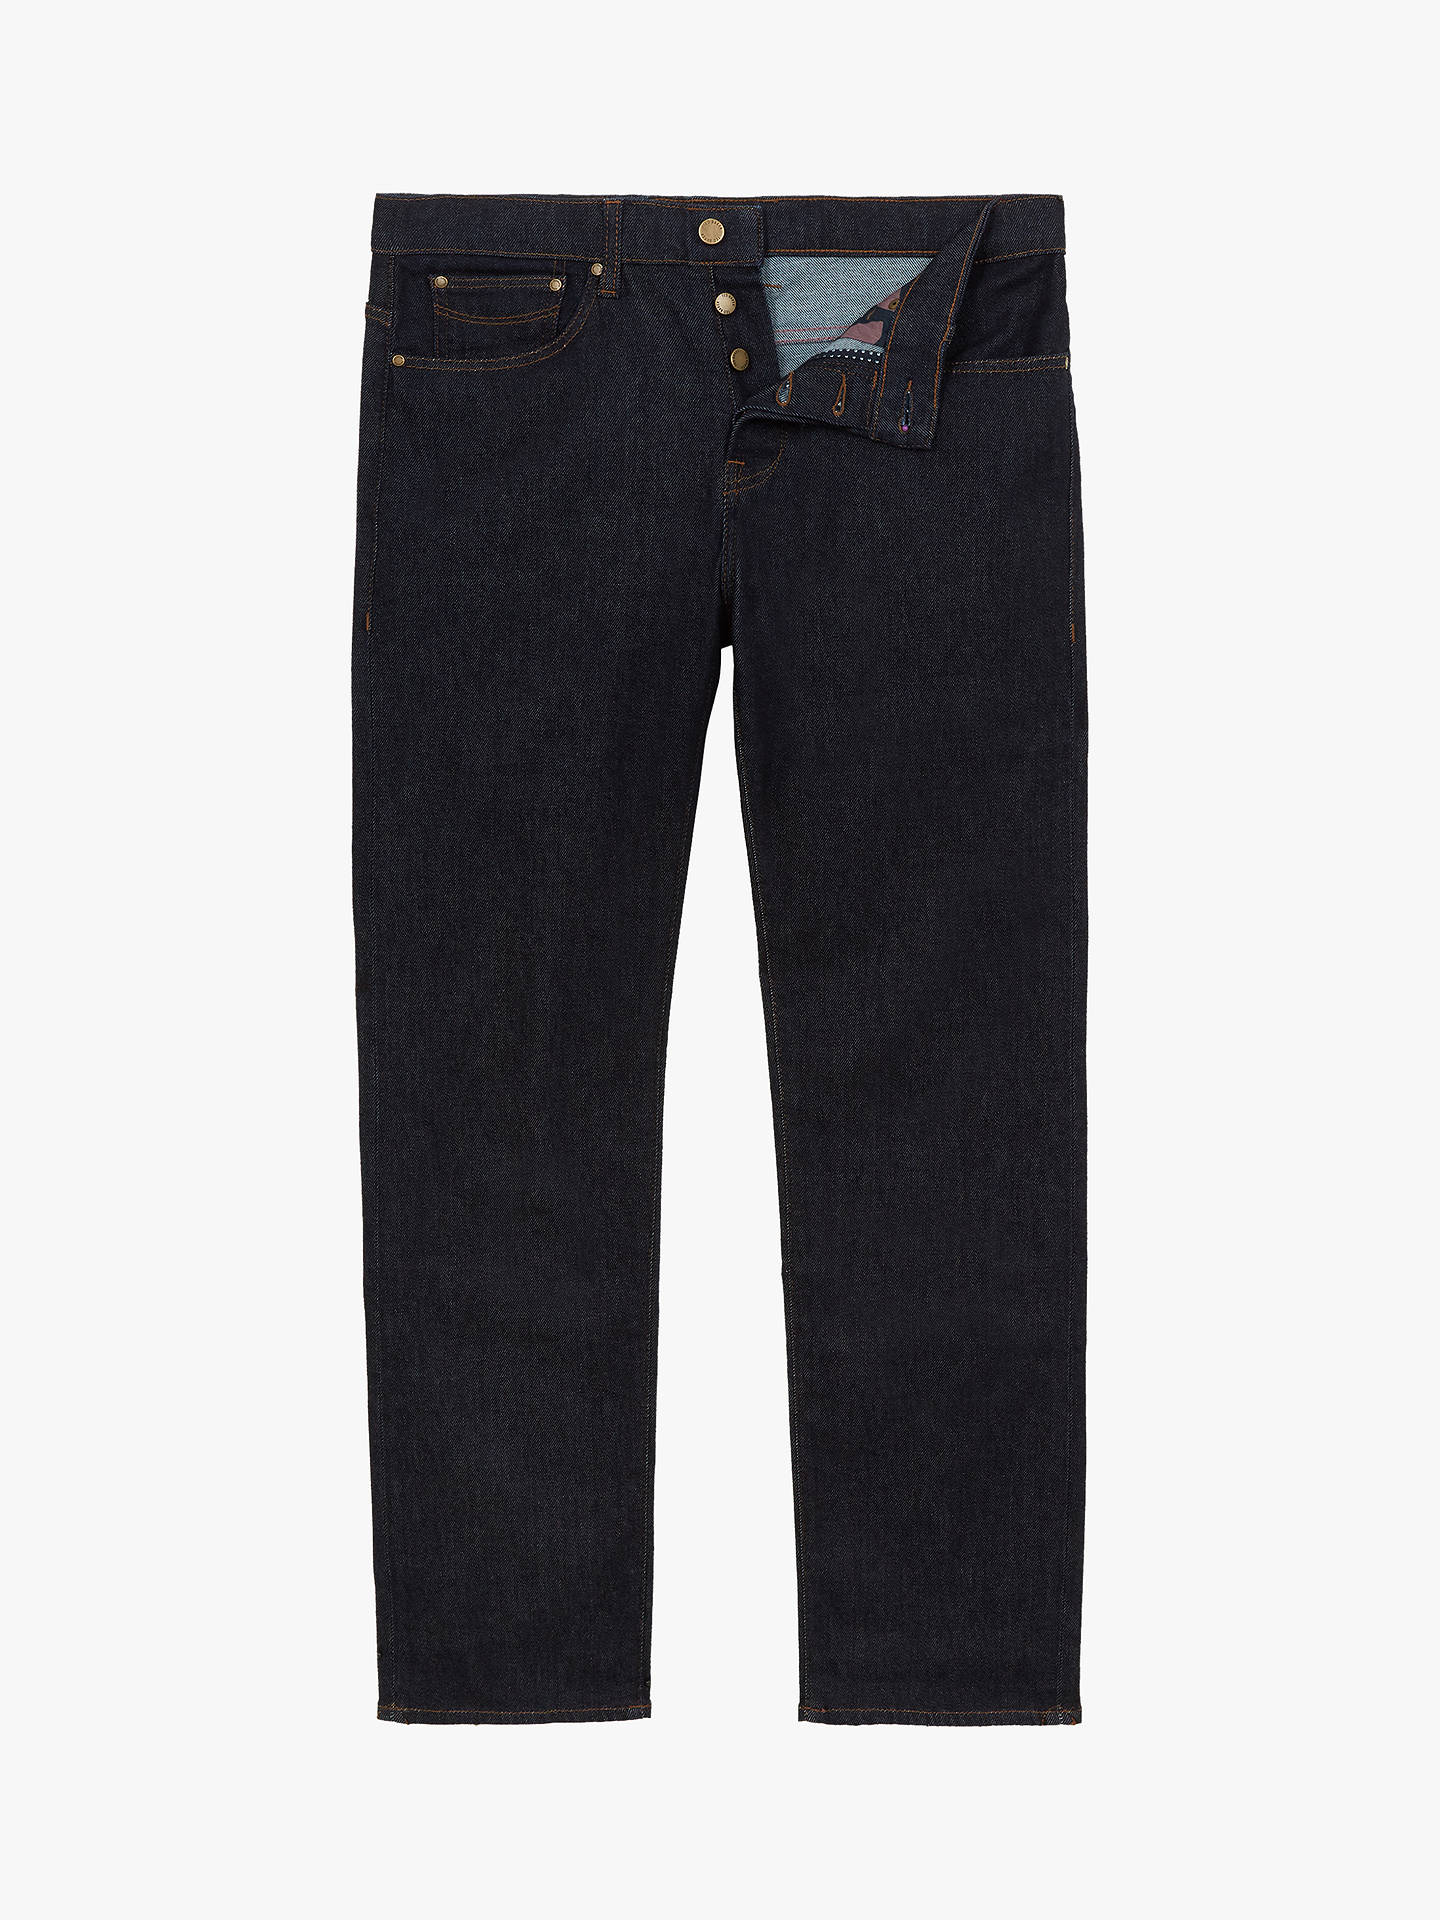 BuyTed Baker Marquee Original Fit Jeans, Blue, 40L Online at johnlewis.com